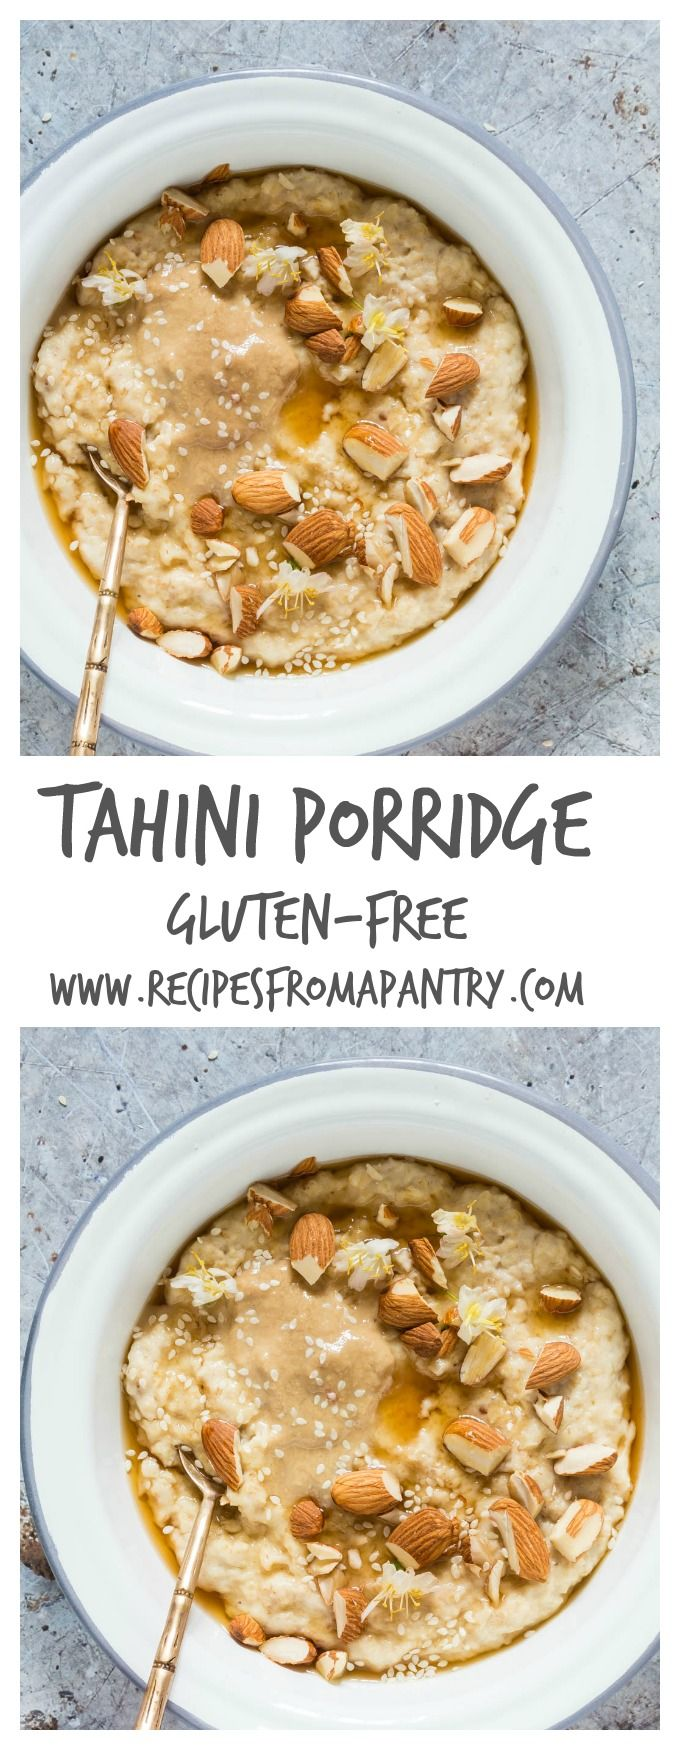 Breakfast is so simple with this gluten-free creamy tahini porridge recipe. It is just milk, oats, tahini, honey and almond nuts | recipesfromapantry.com